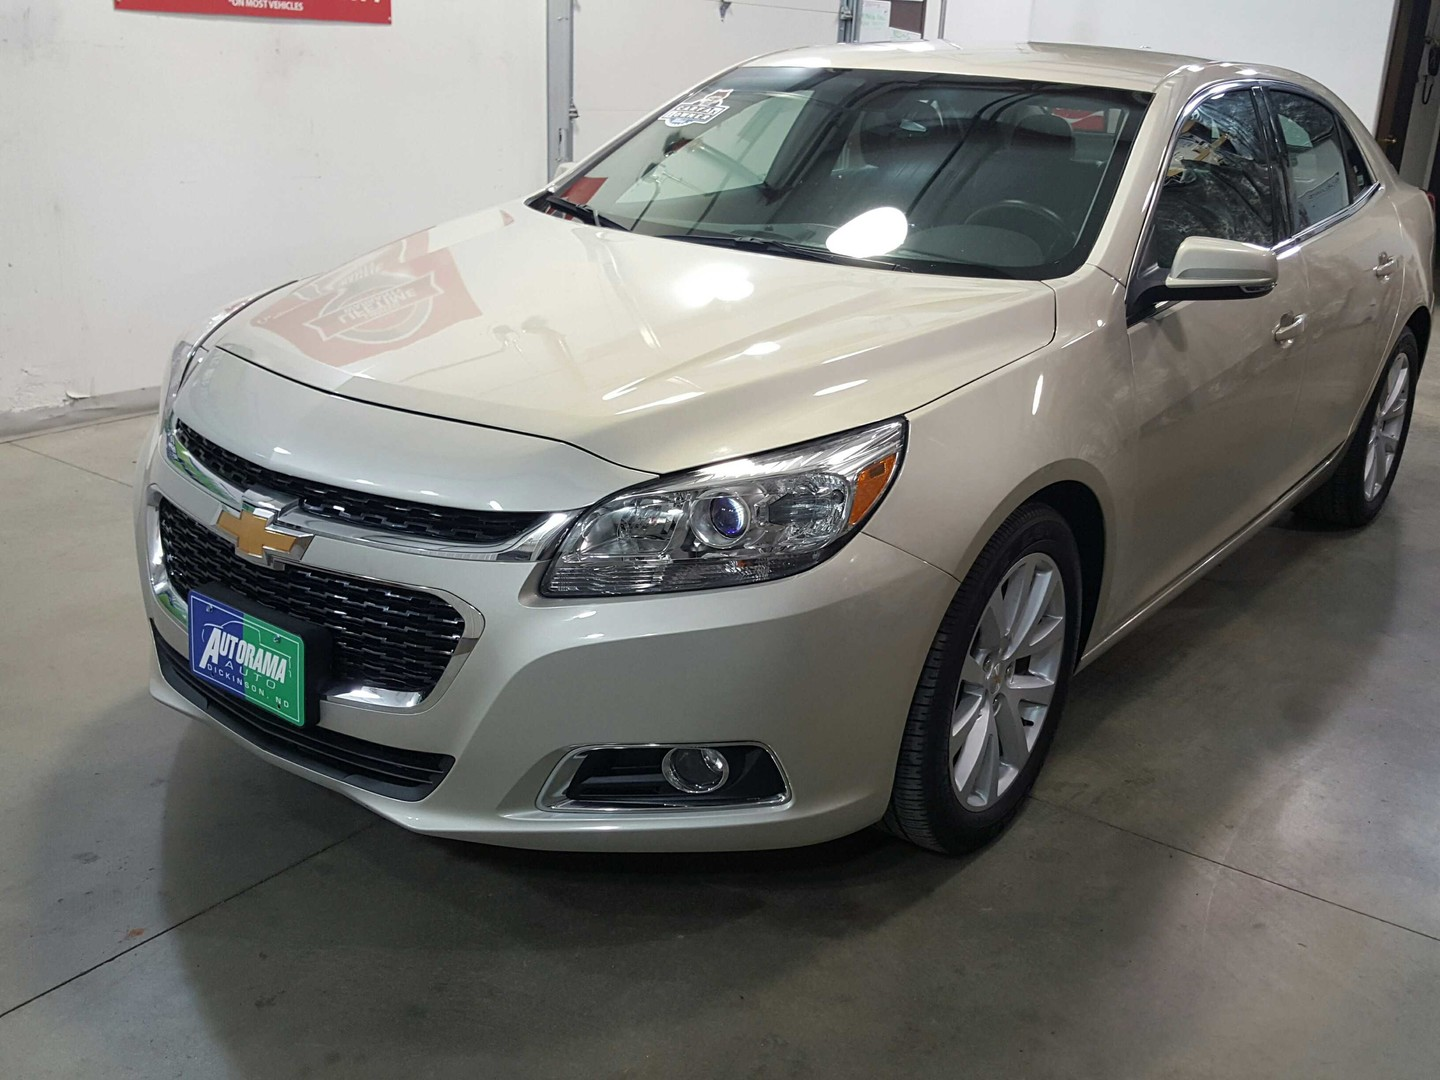 chevy malibu 2015 price 2015 chevrolet malibu reviews and rating motor trend 2015 chevrolet. Black Bedroom Furniture Sets. Home Design Ideas